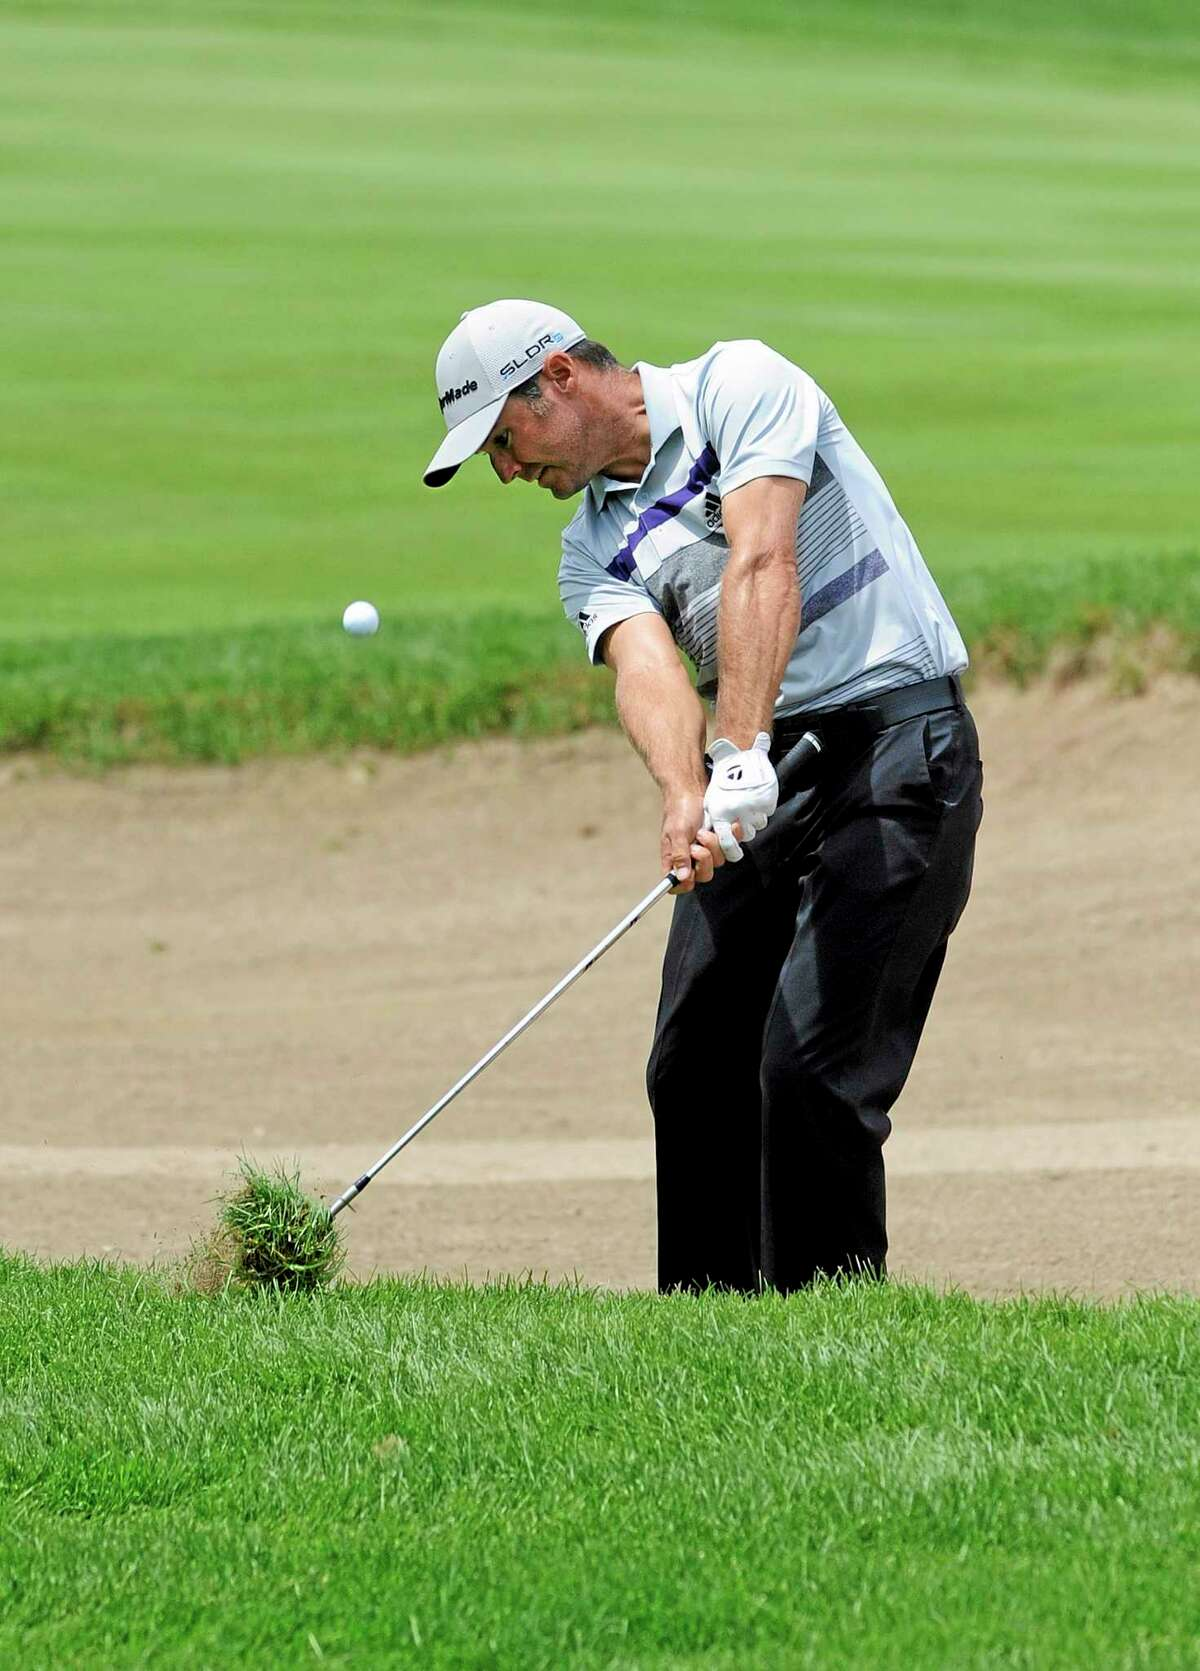 Trevor Immelman, here hitting out of the rough on the 9th hole, made double-eagle on the par-5 13th hole during the first round of the Travelers Championship Thursday in Cromwell.